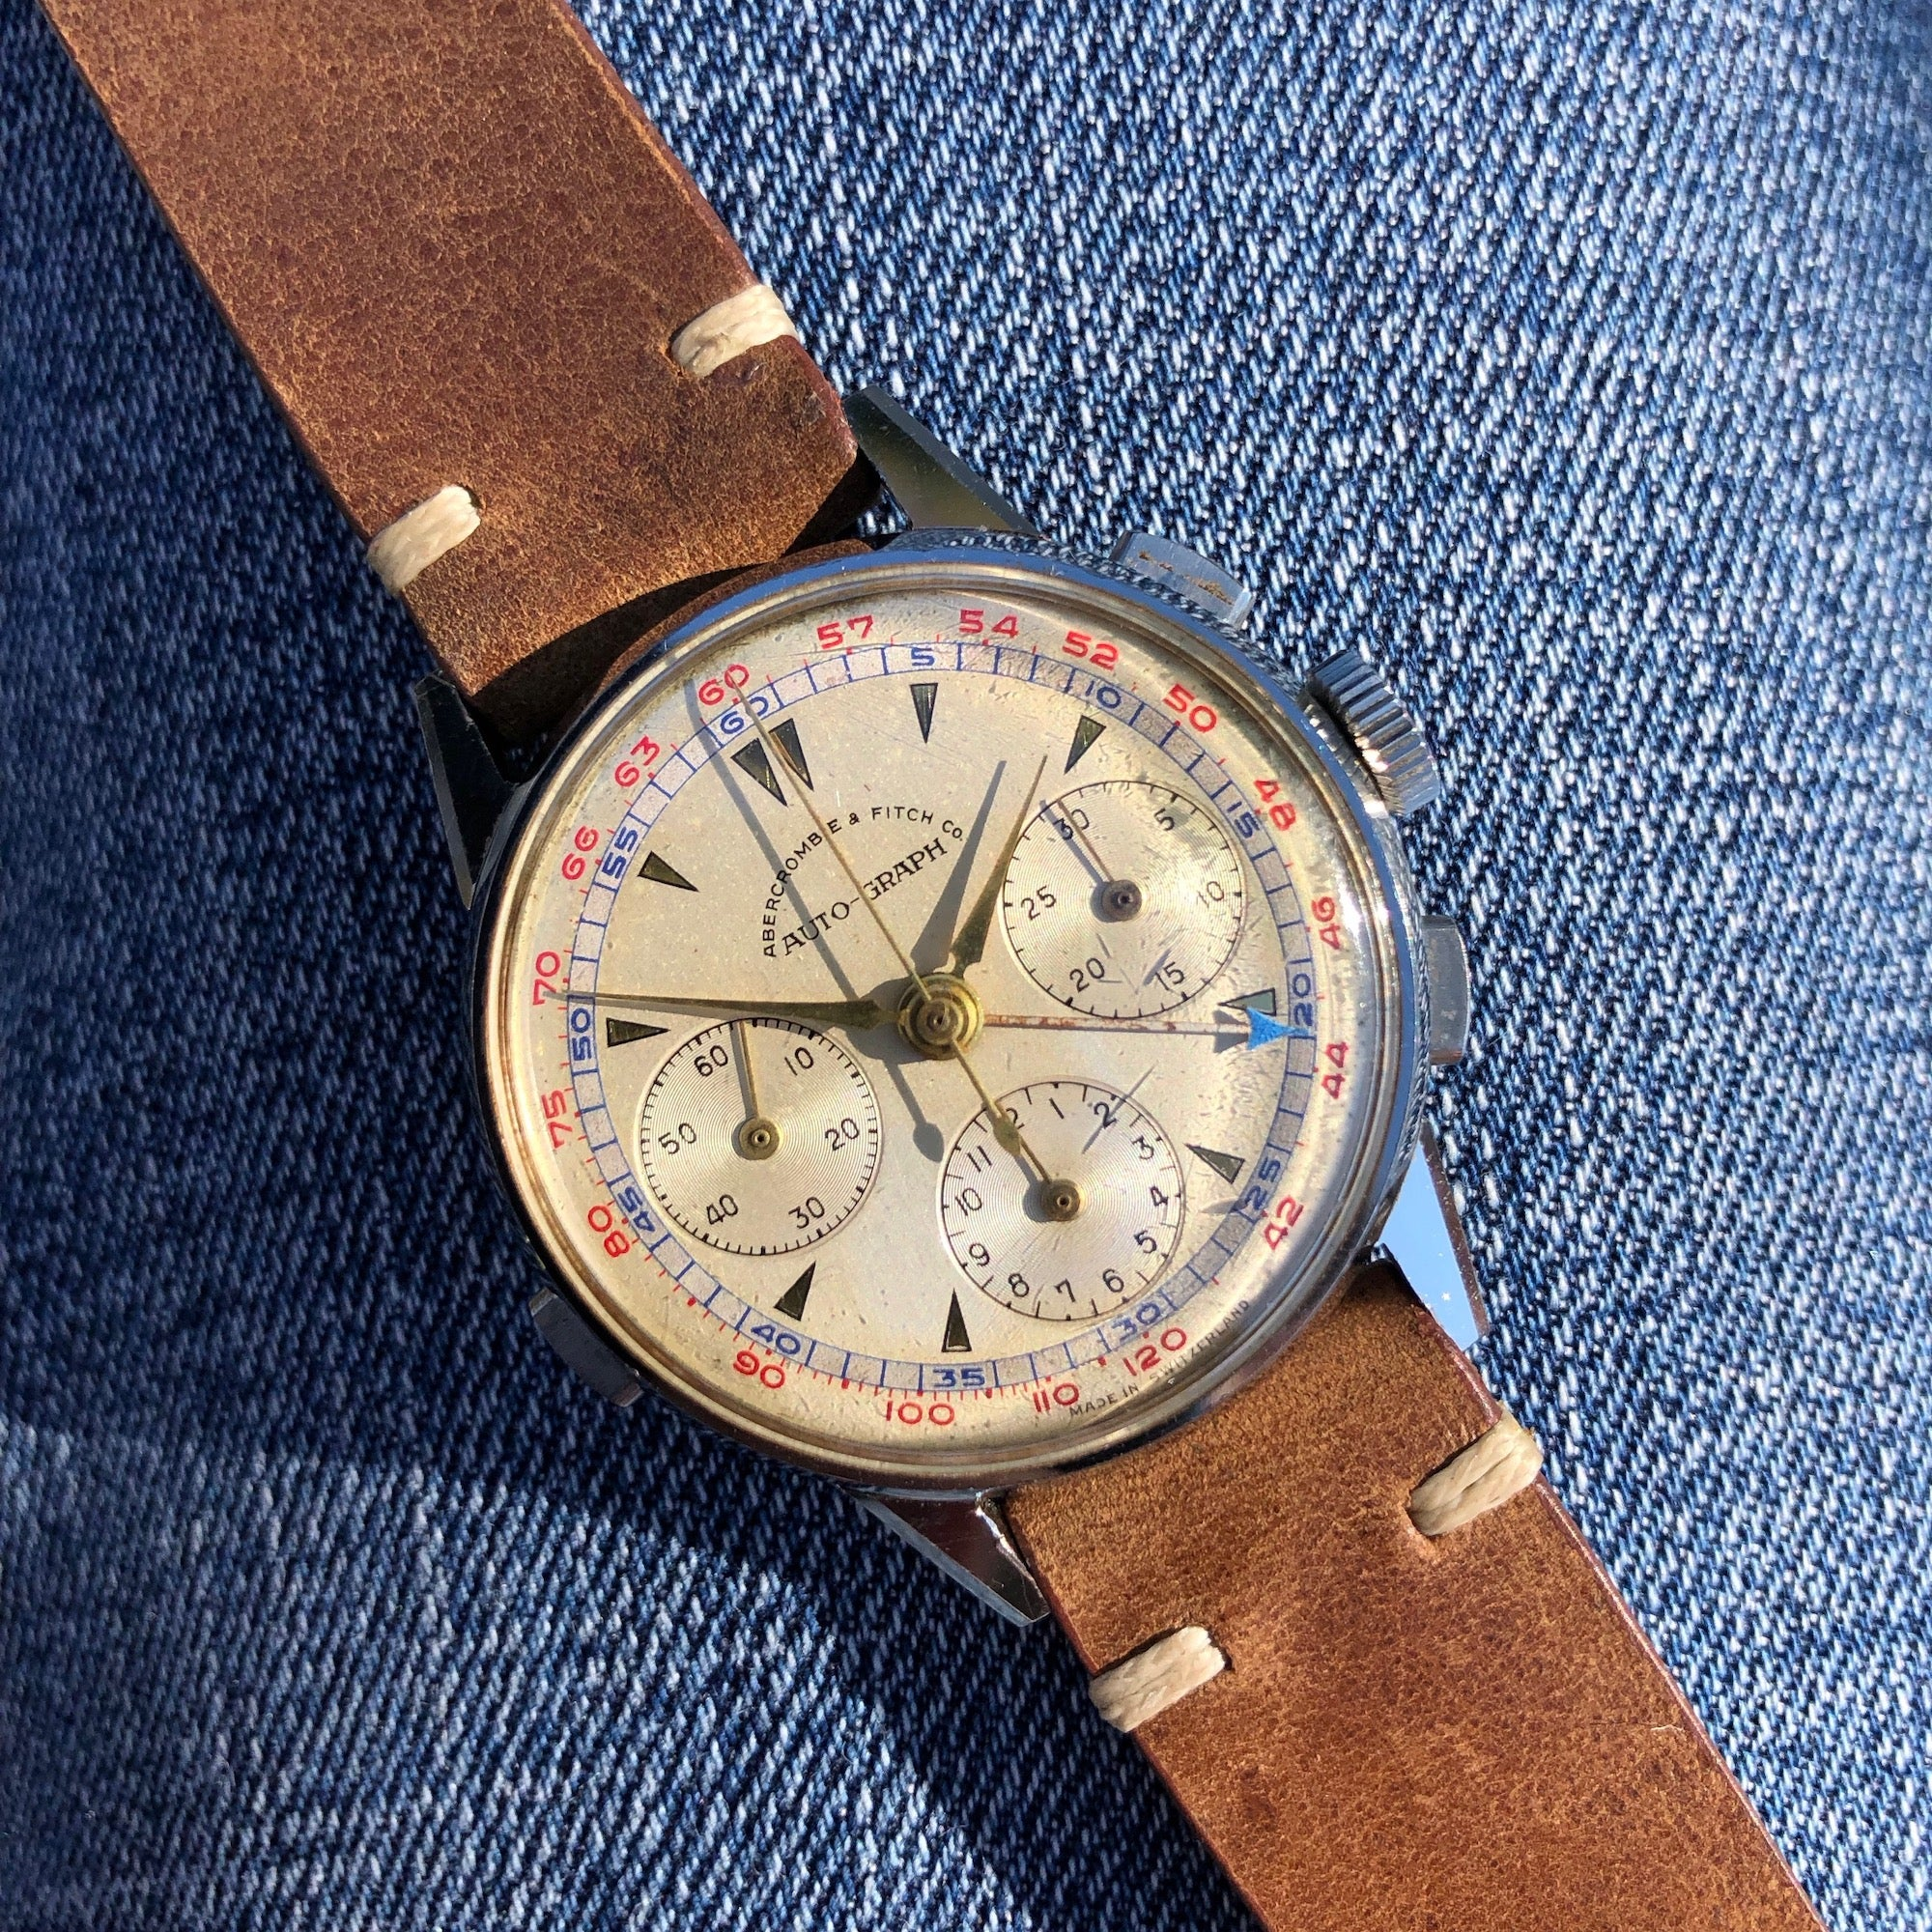 Vintage Heuer Abercrombie Fitch Co Auto Graph Valjoux 72 Chronograph Steel Wristwatch - Hashtag Watch Company